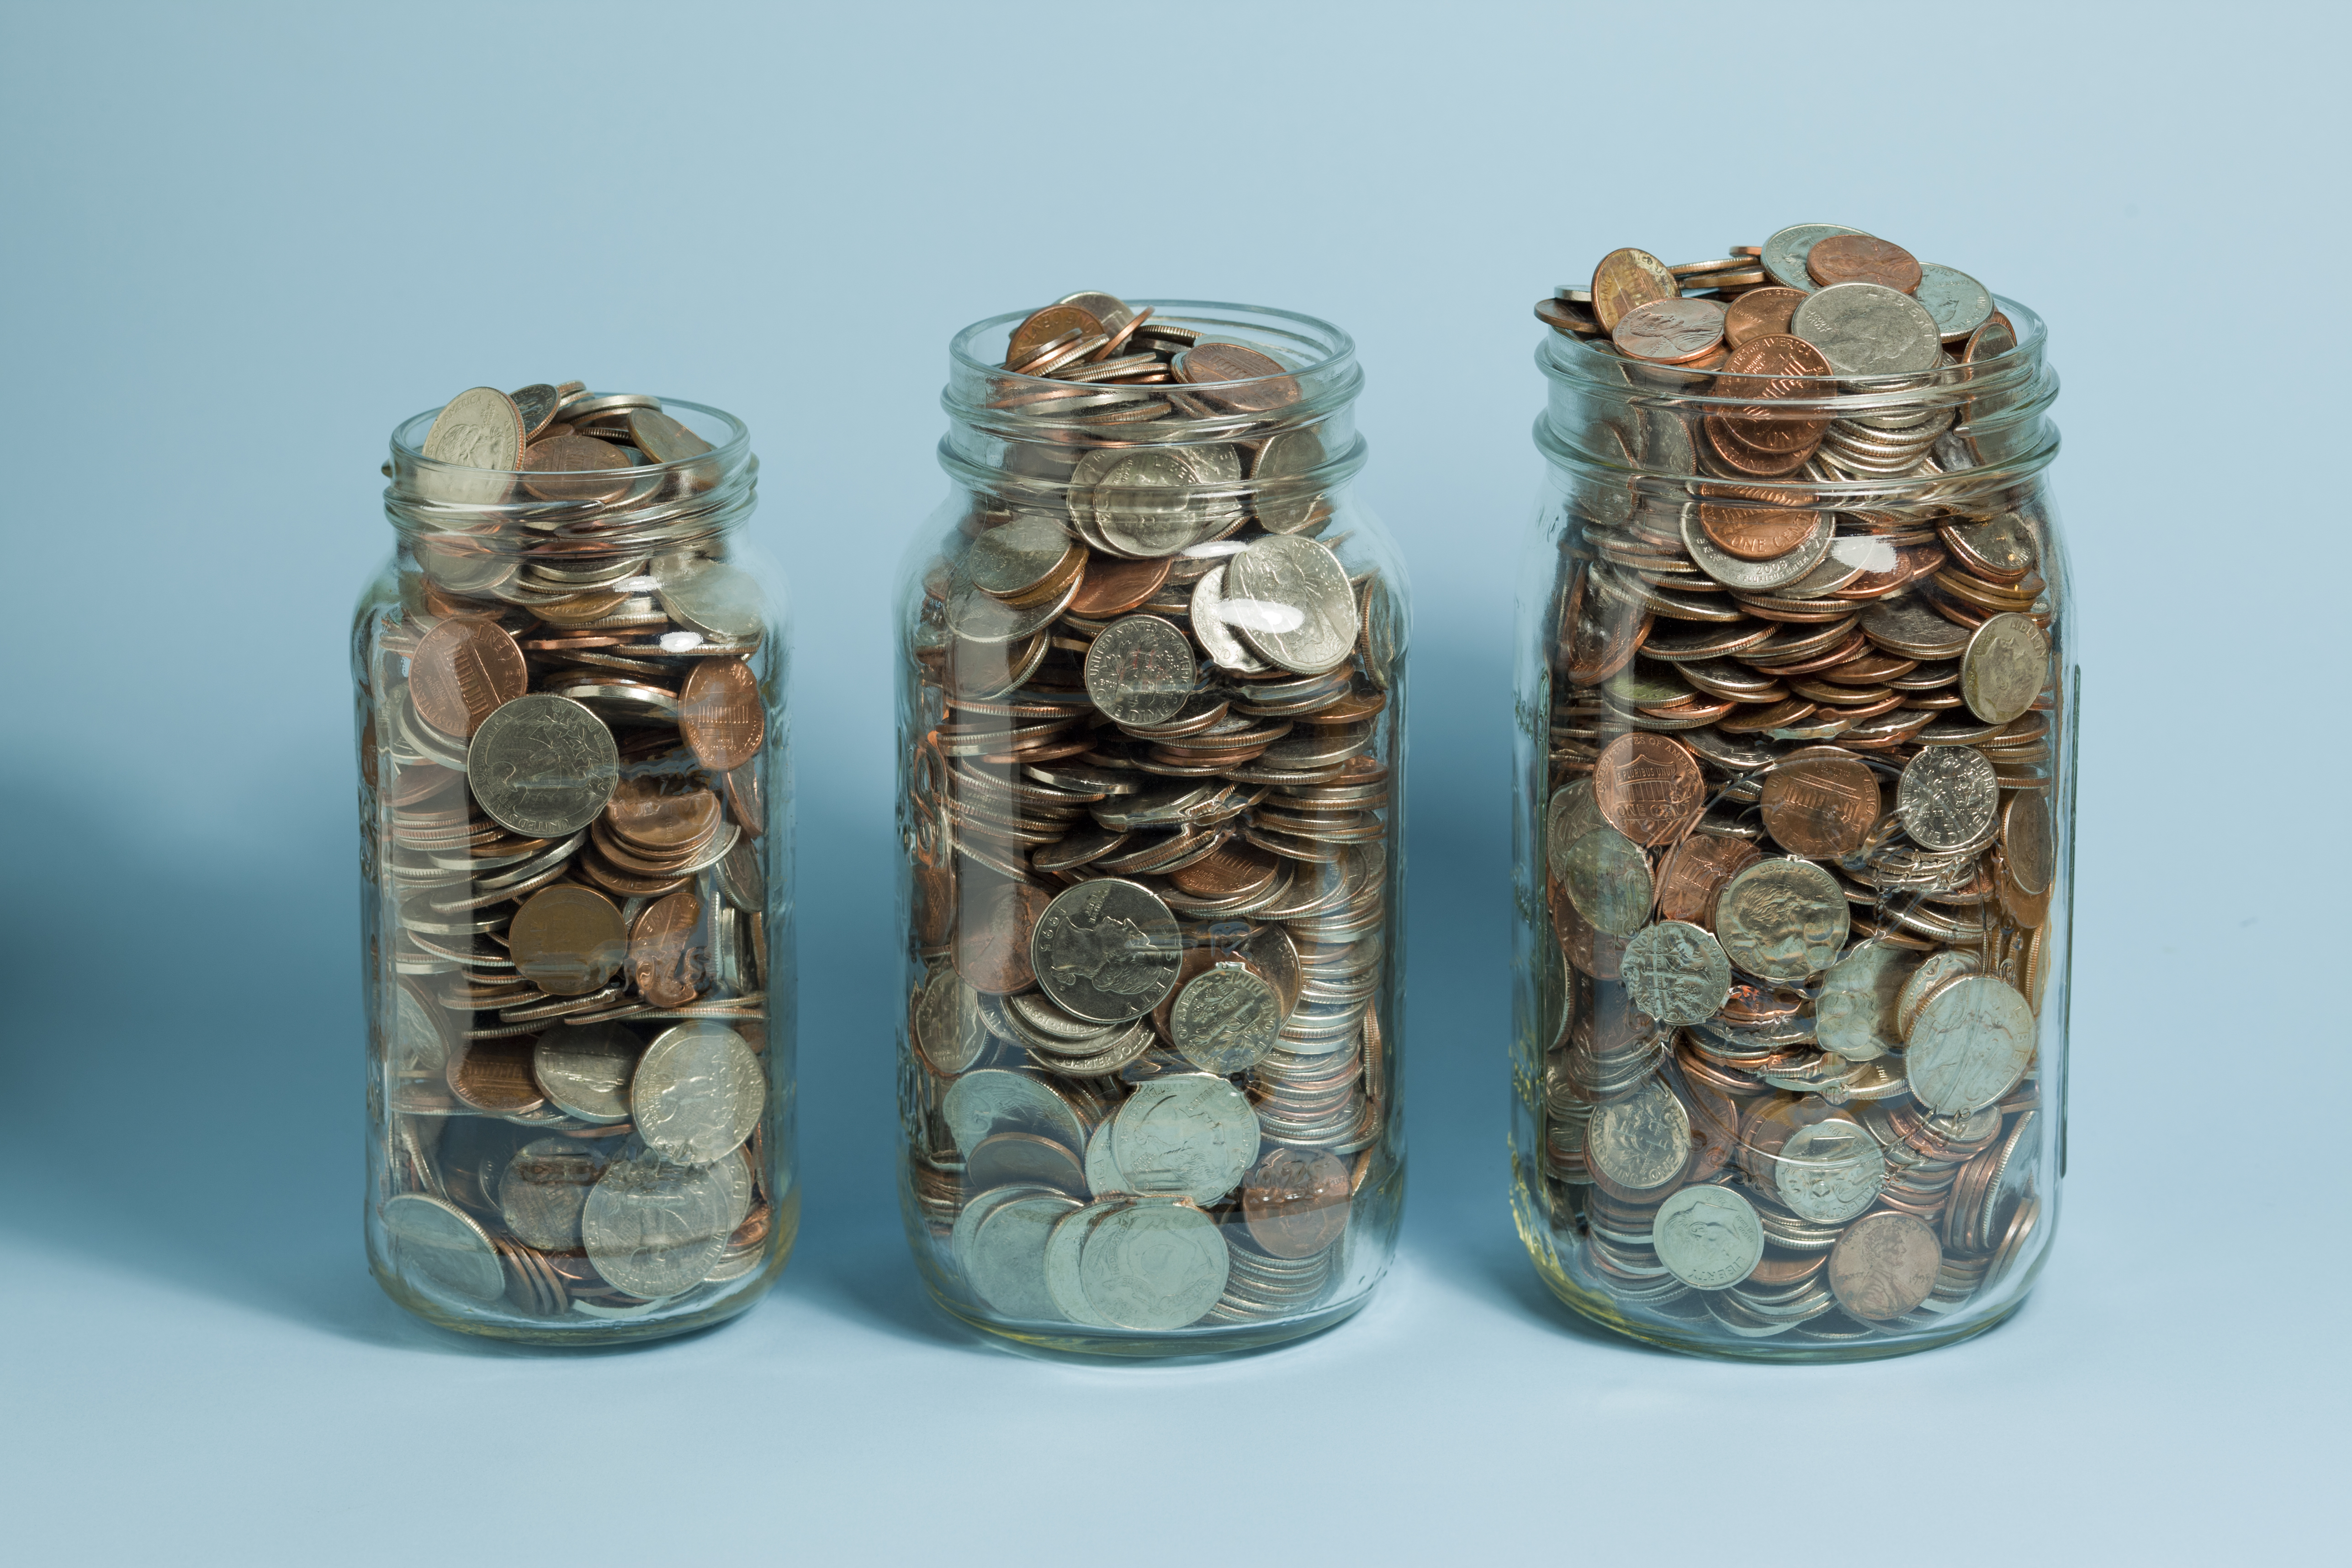 Three Mason jars filled with American coins. The jars get bigger left to right.